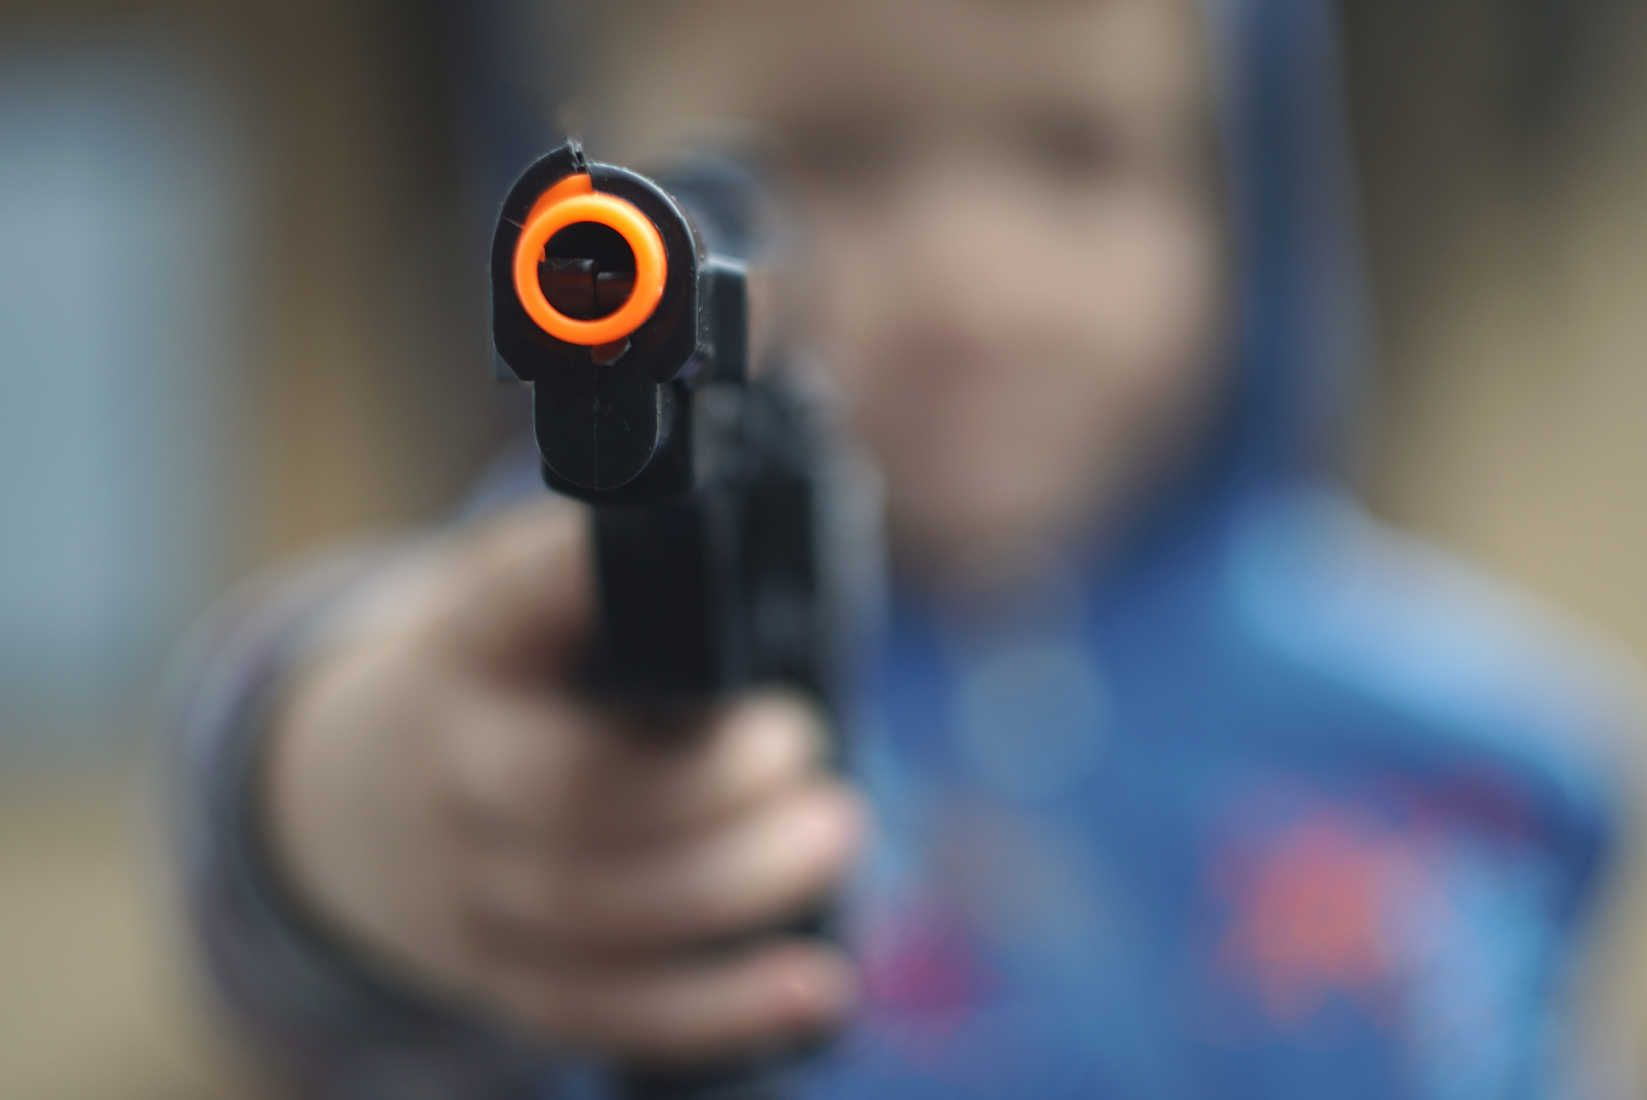 12-Year-Old Suspended for Having Neon Toy Gun in Virtual Class